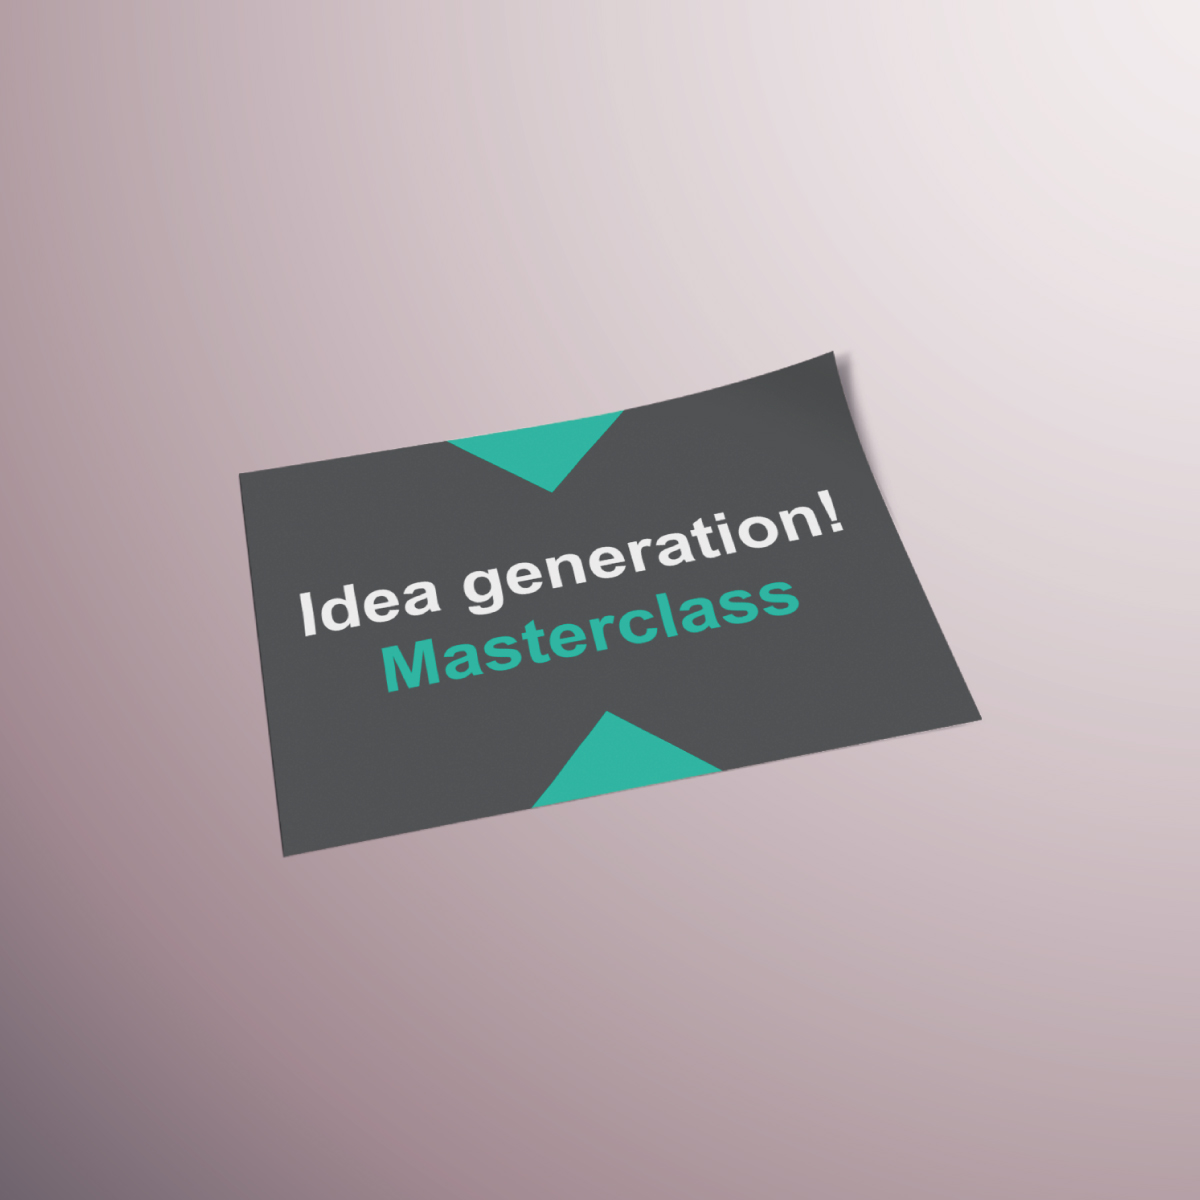 Uca idea generation masterclass by viviane williams